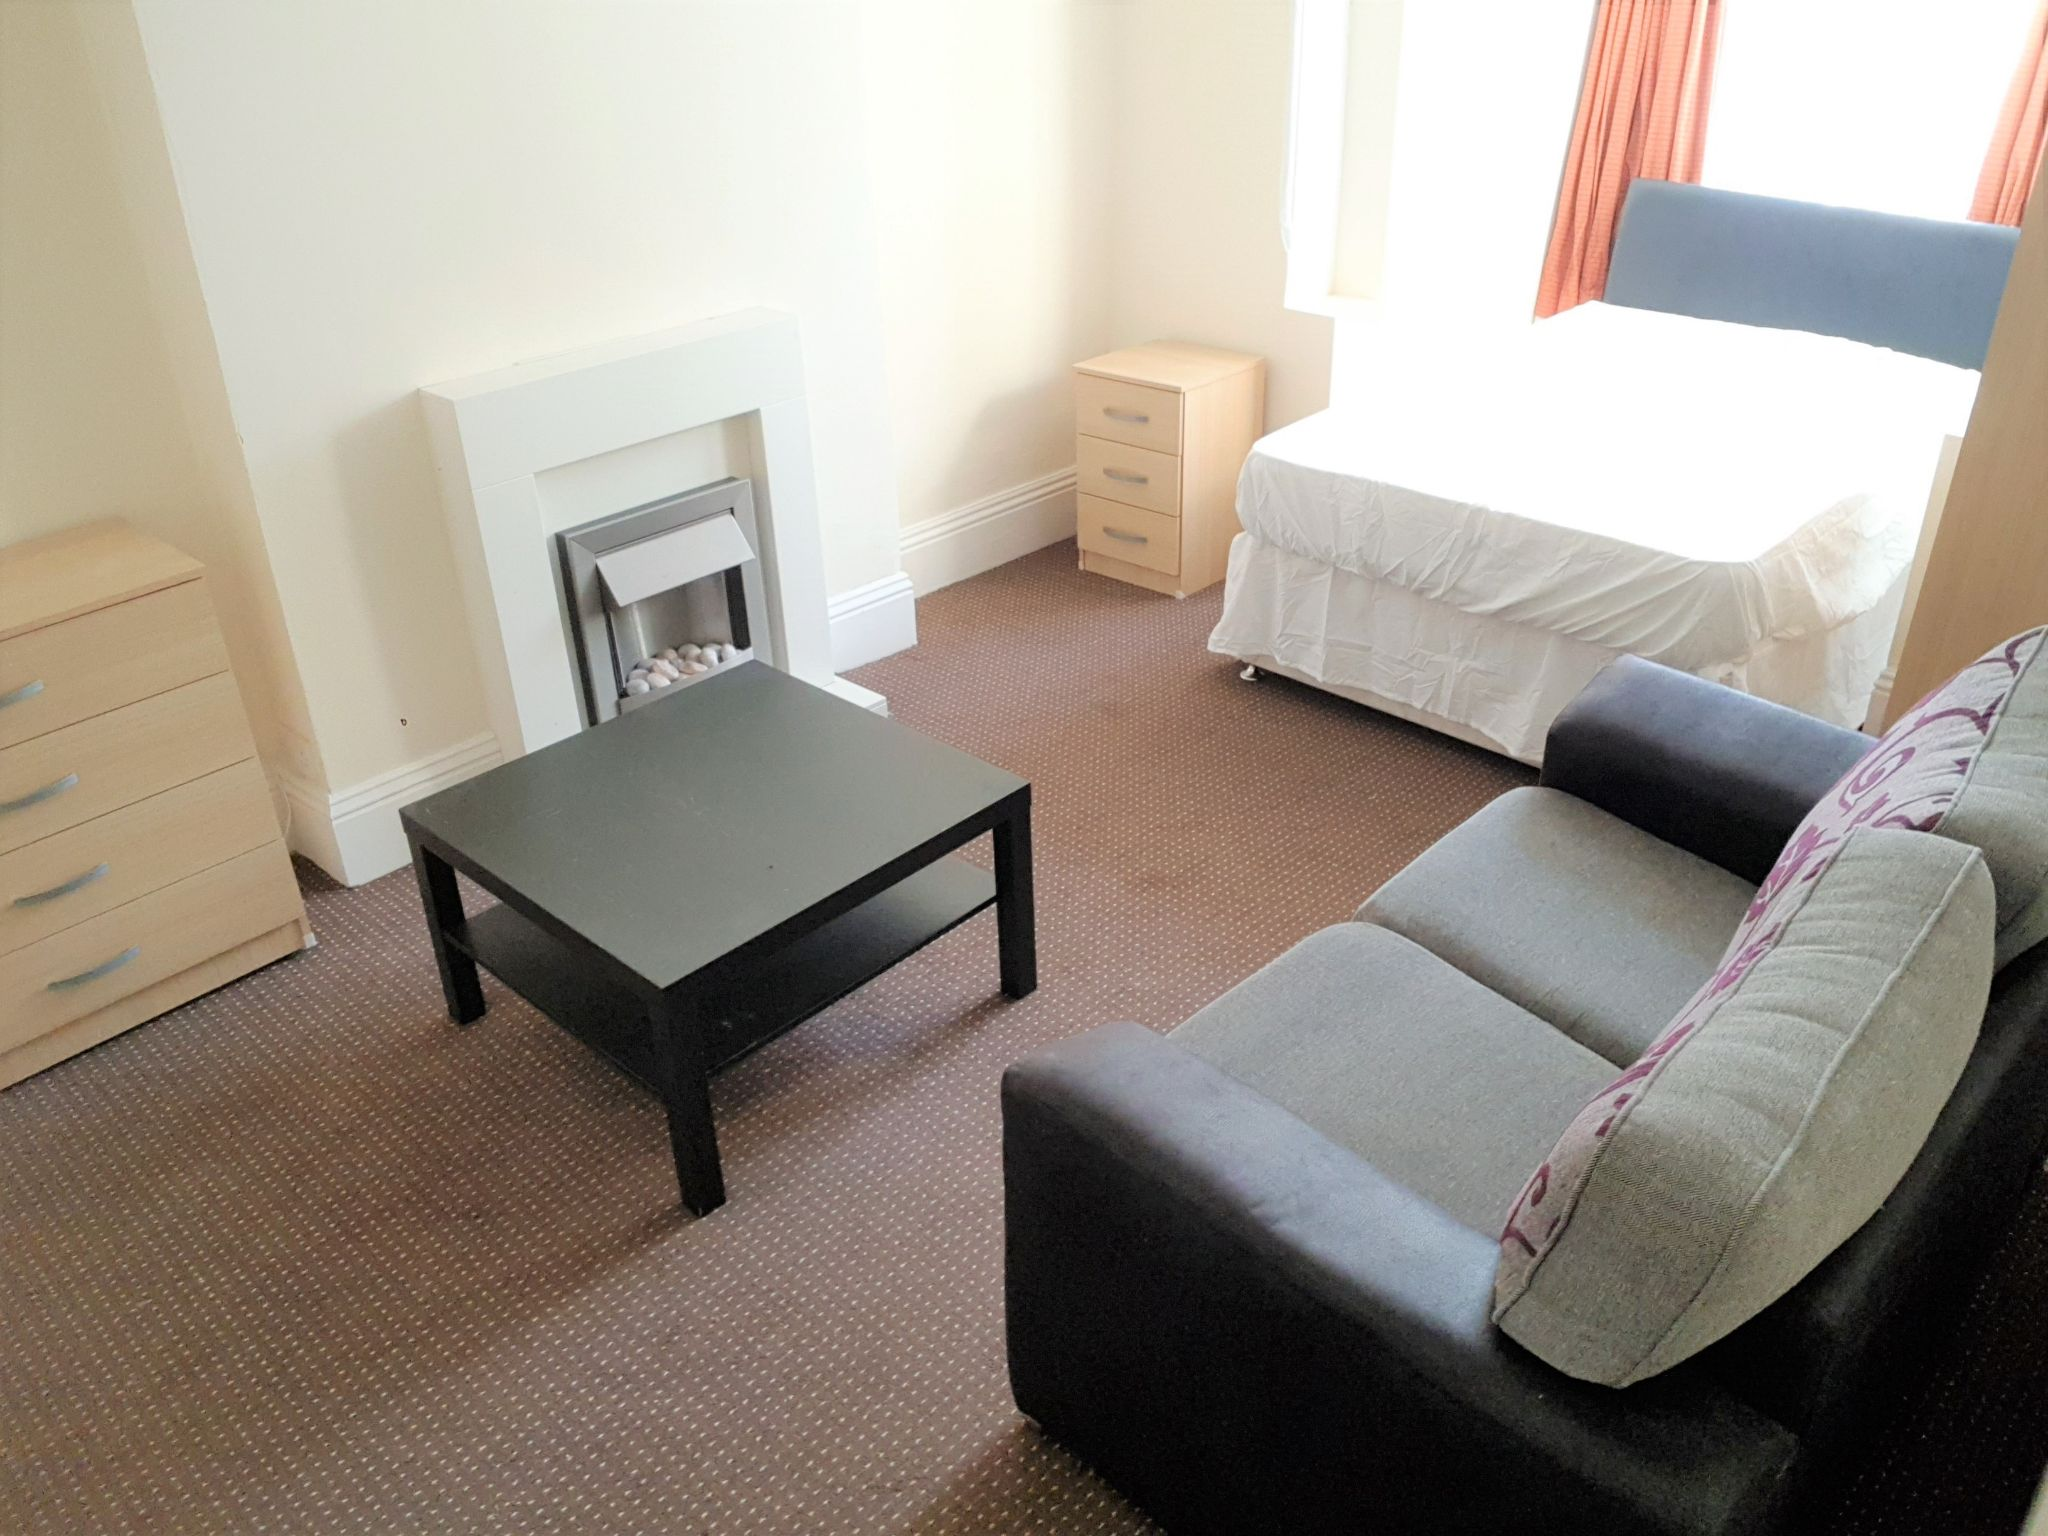 1 Bedroom Shared House To Rent - VACANT Downstairs Double Bedroom